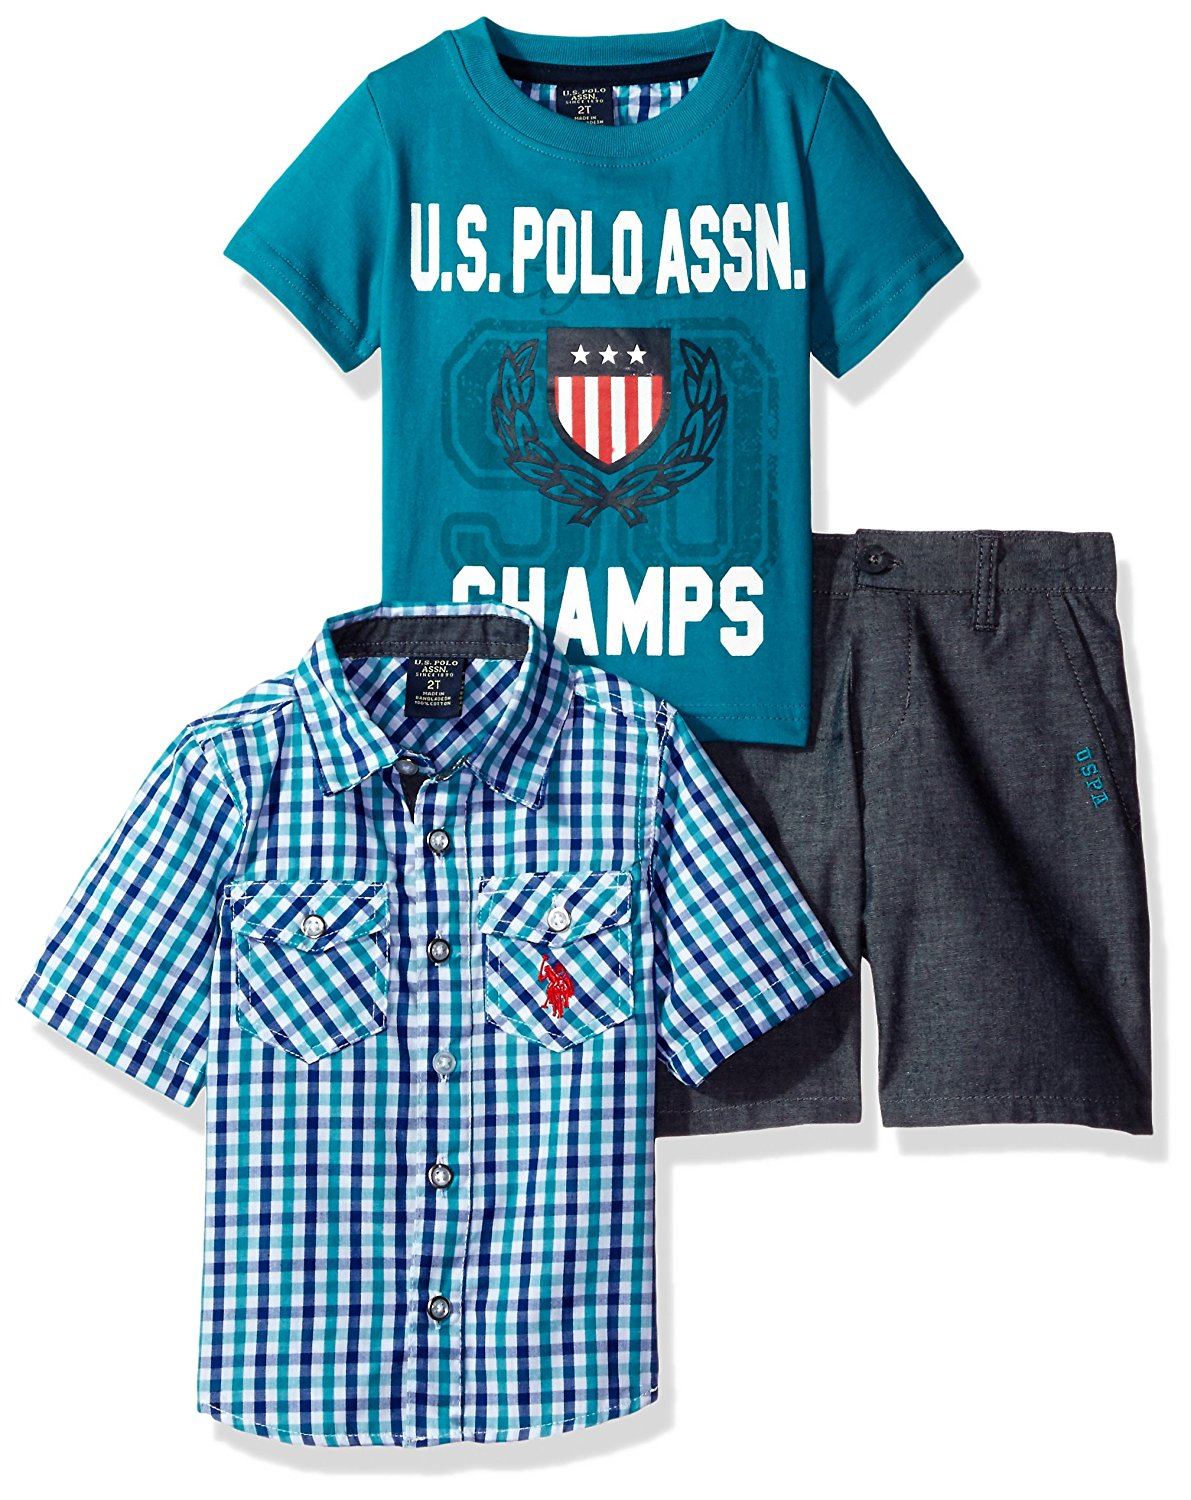 U.S. Polo Assn. Boys' Little Sleeve Sport, T-Shirt and Twill Short Set